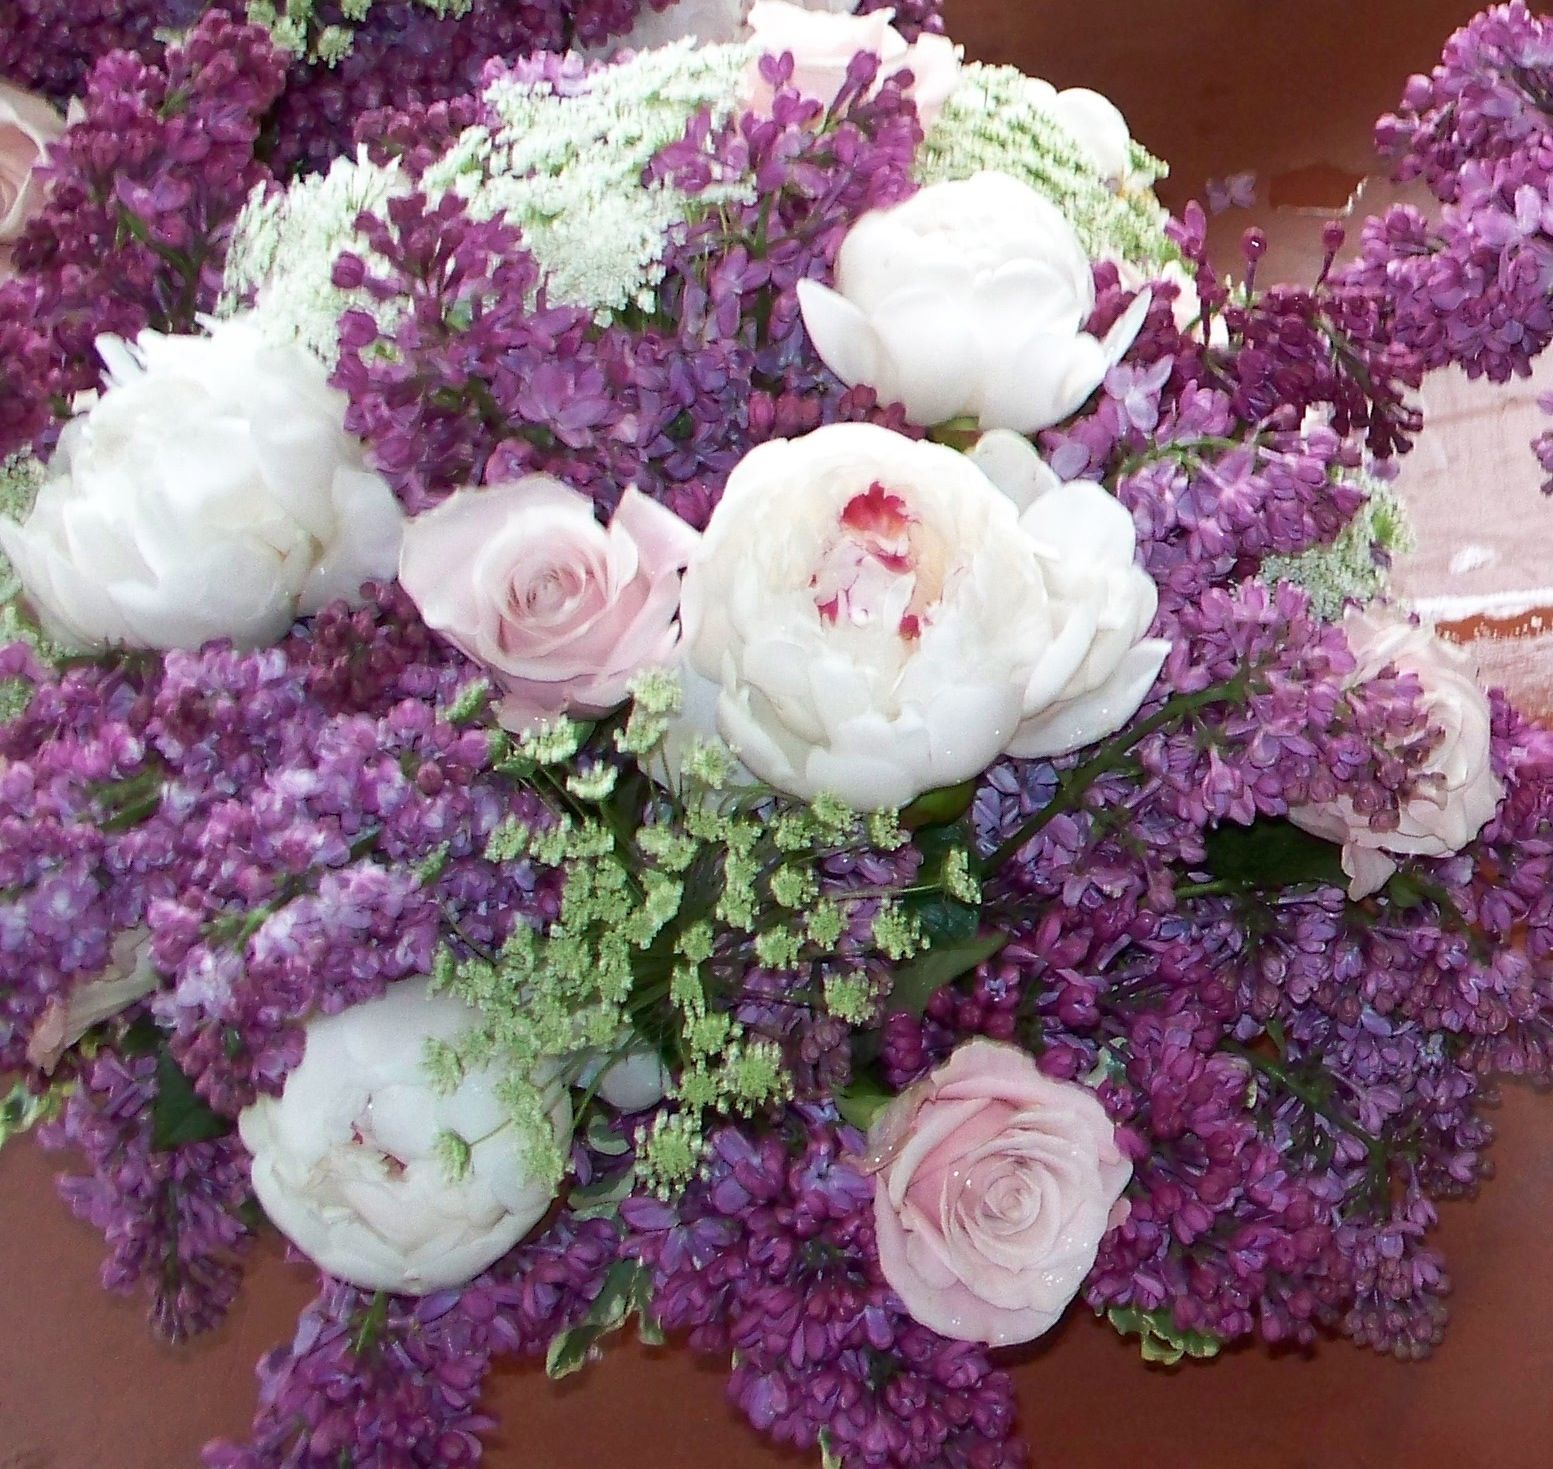 Wedding Reception Flowers Centerpieces In Purples And Pinks Of Peony Lilac And Rose Westches Purple Wedding Theme Wedding Reception Flowers Floral Wedding